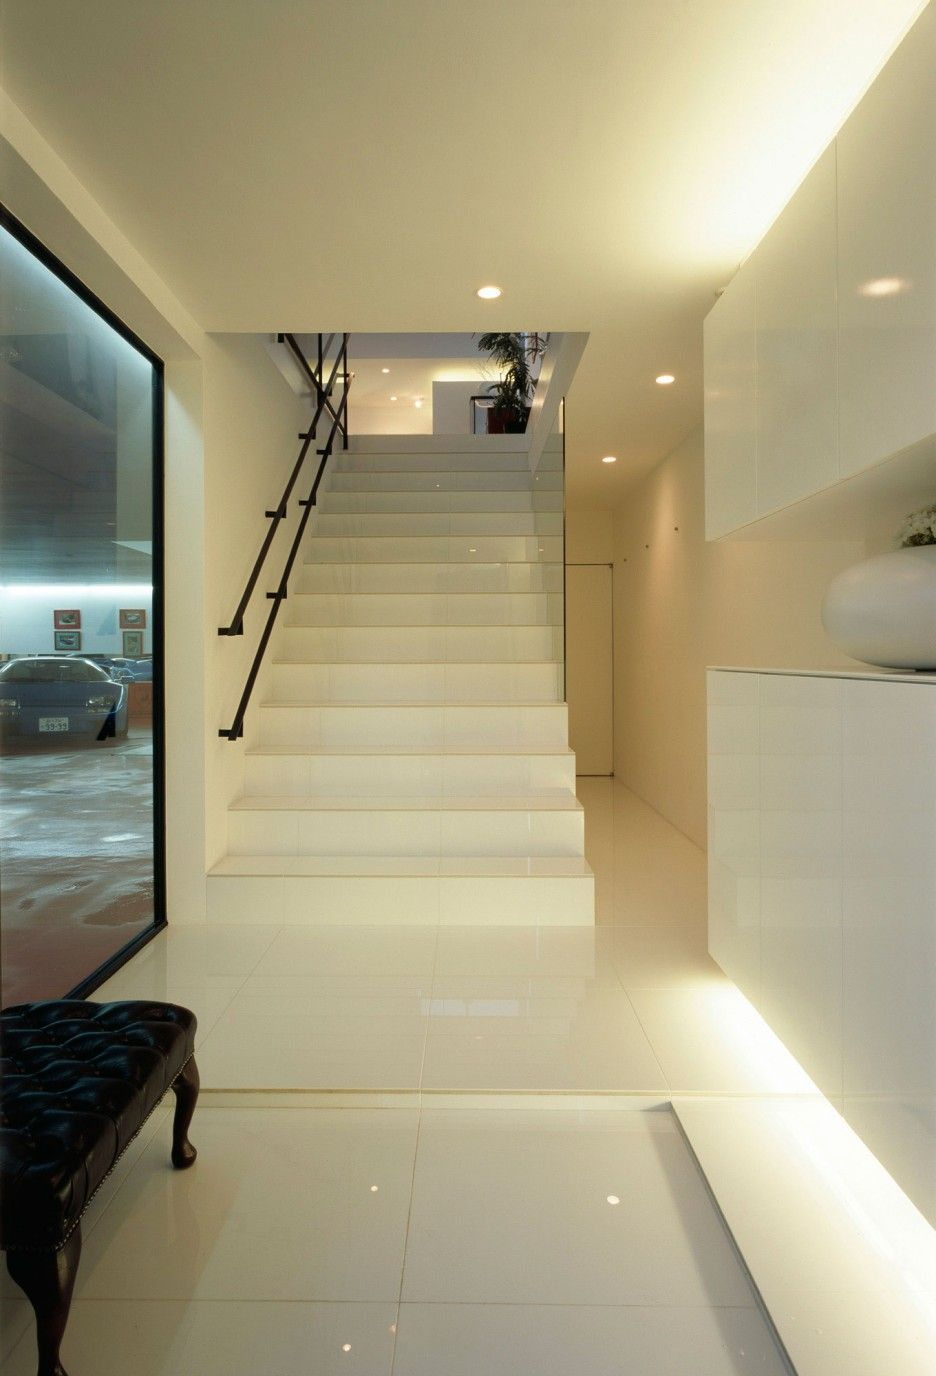 decorationastounding staircase lighting design ideas. Astonishing Hallway Design In Kre Rsidence Decor With Black Leather Bench Placed Nearby The Window Before Decorationastounding Staircase Lighting Ideas R